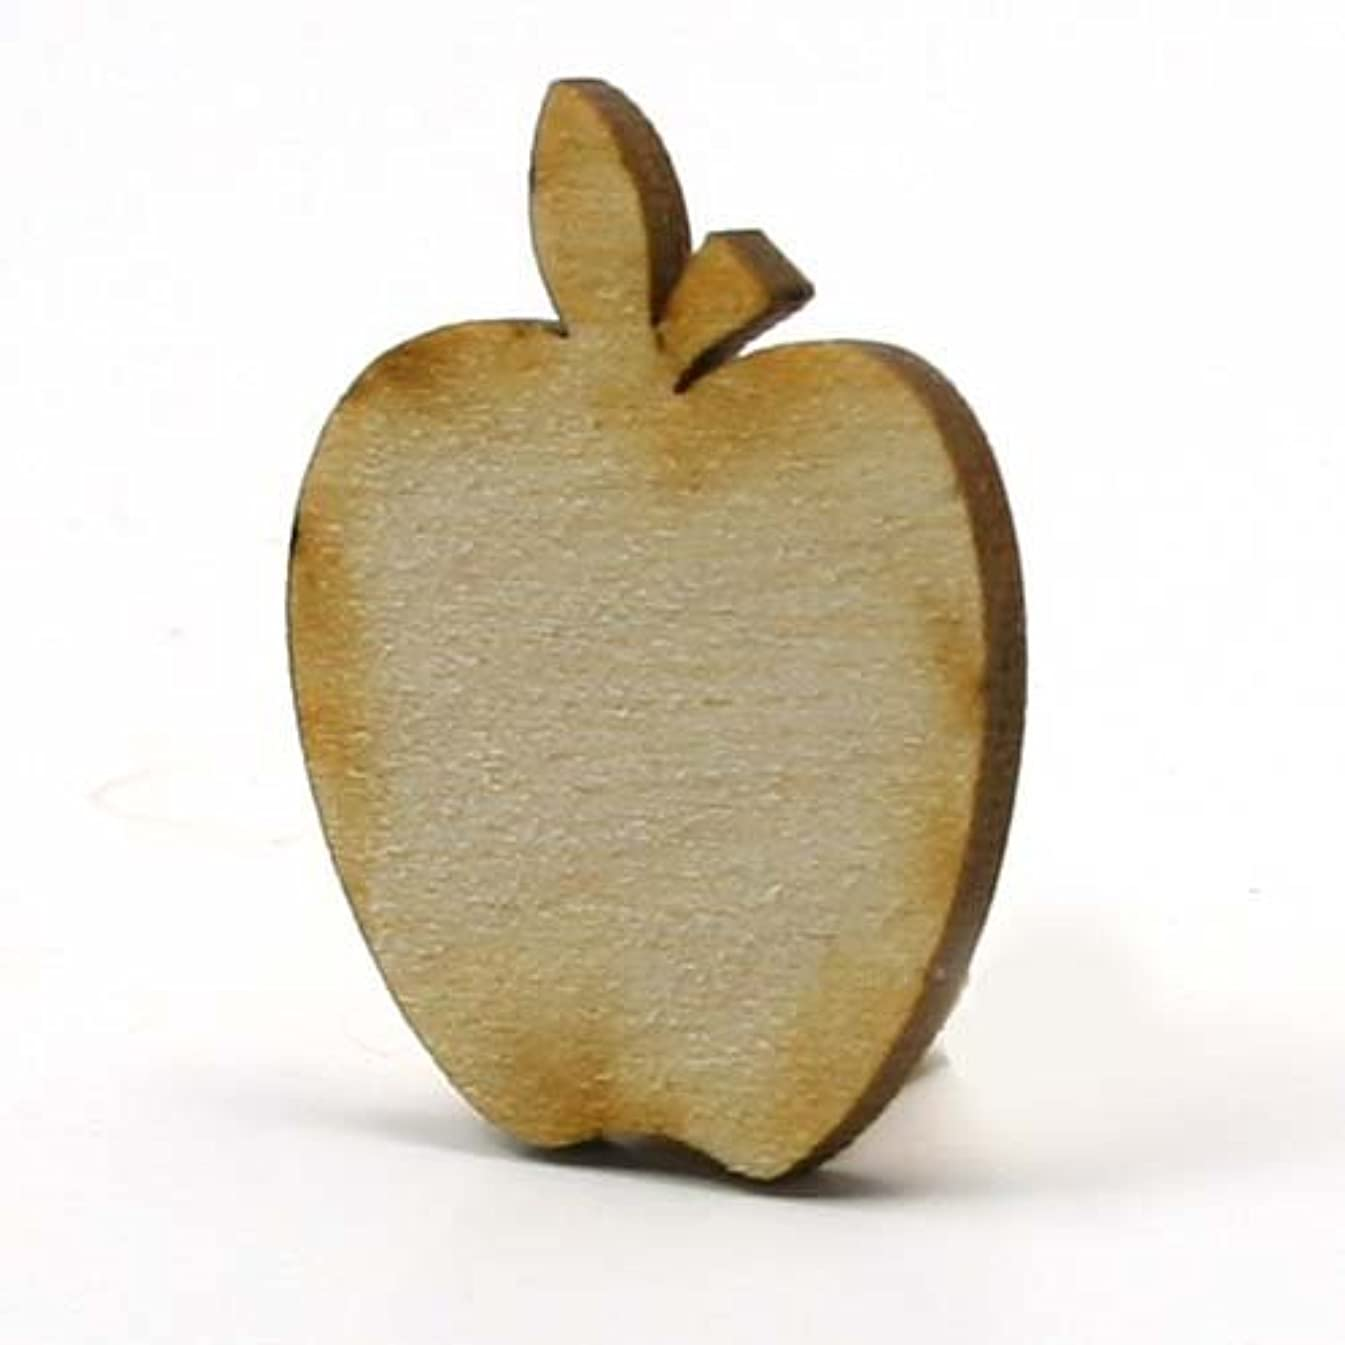 Mylittlewoodshop Pkg of 25 - Apple - 2 inches tall by 1.6 inches wide and 1/8 inch thick unfinished wood (LC-APPL04-26)